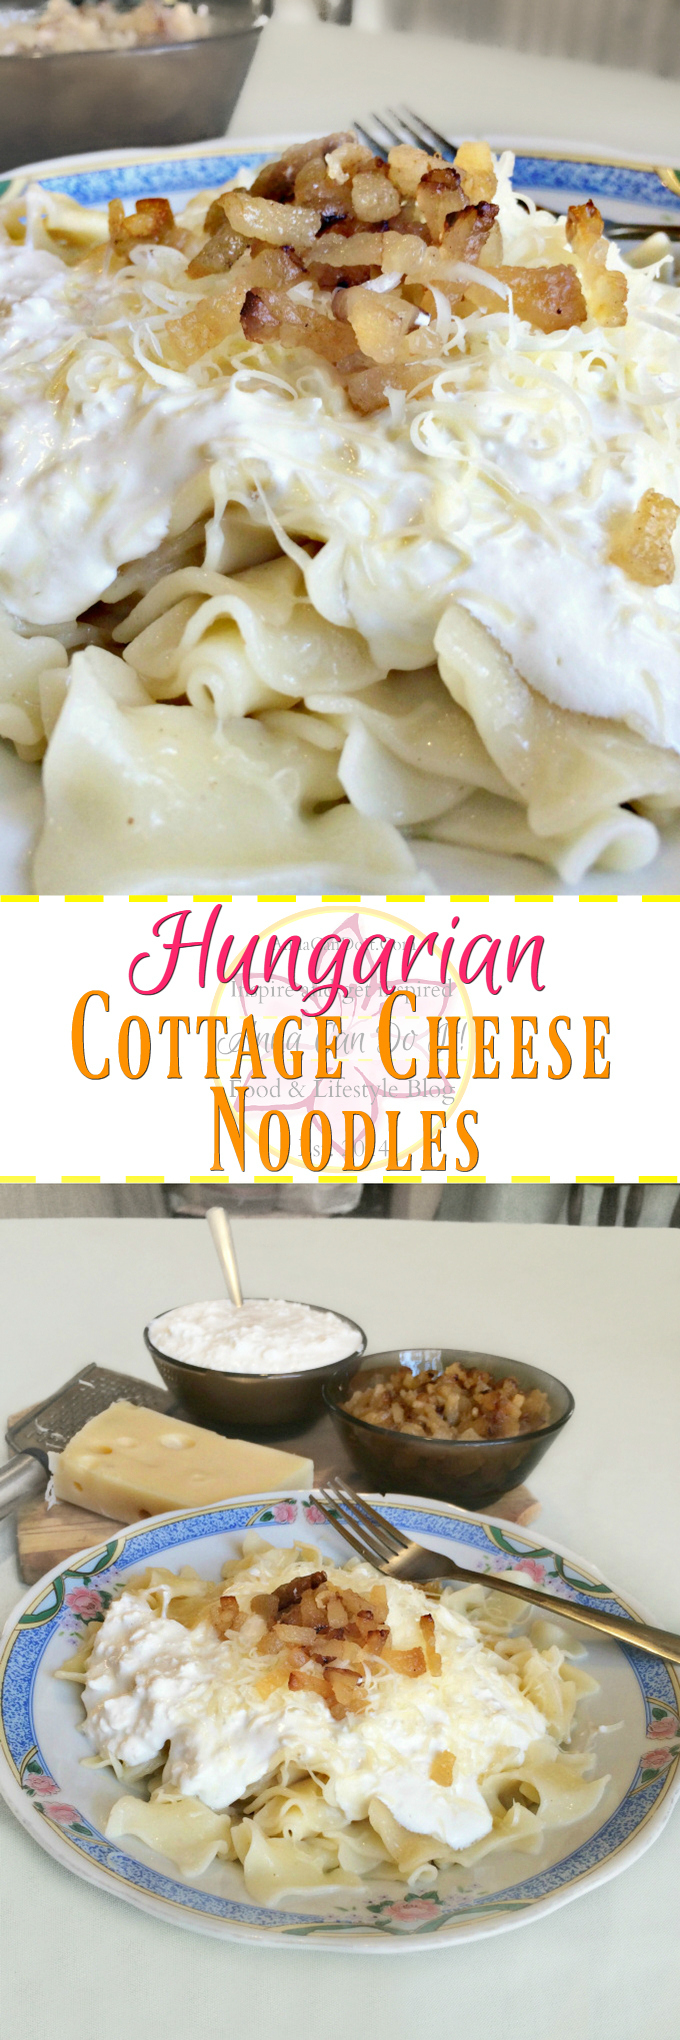 Hungarian Cottage Cheese Noodles   Anna Can Do It!  The Hungarian Cottage  Cheese Noodles